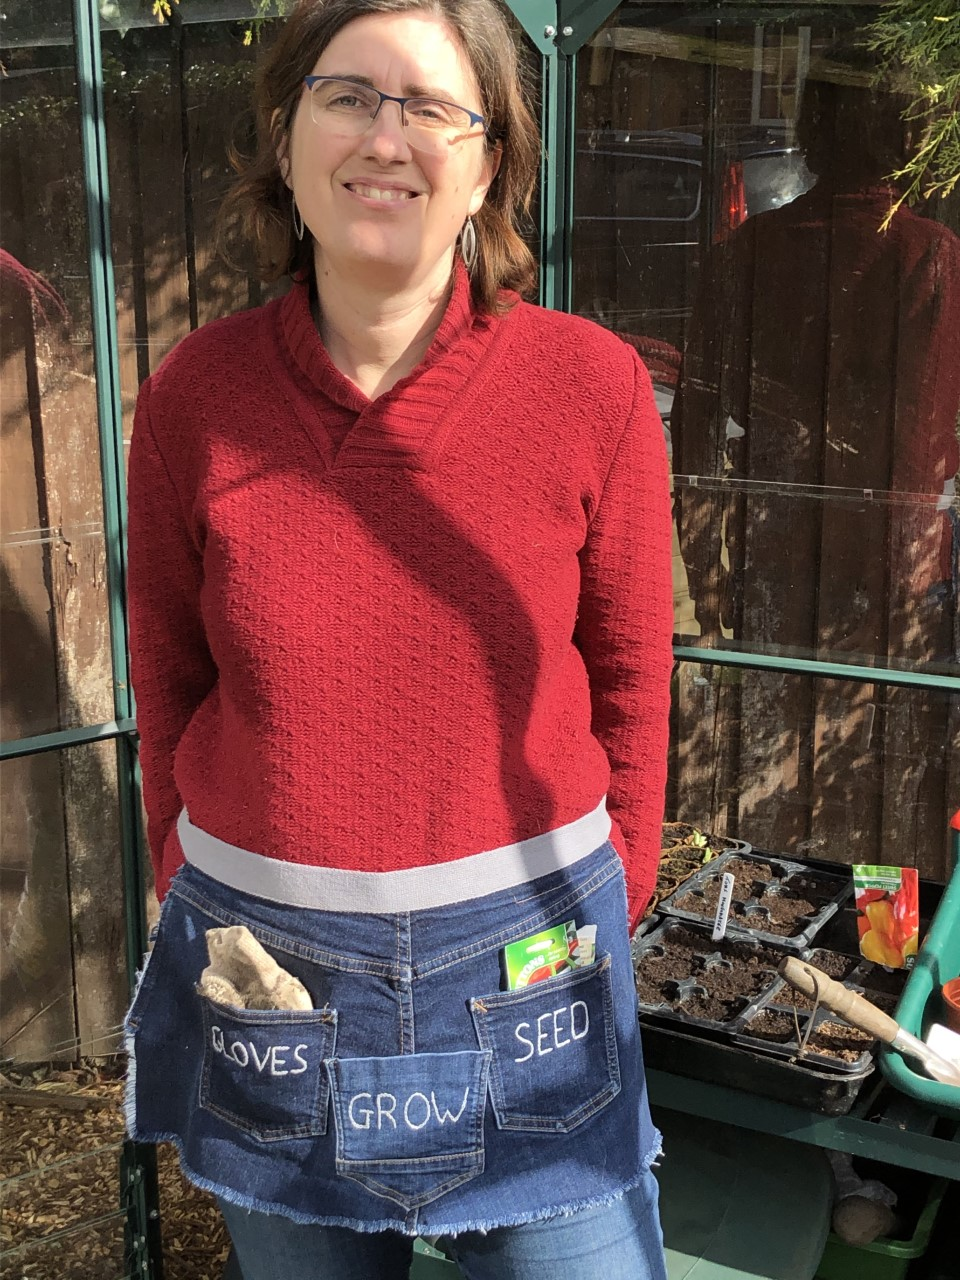 Learn how to sew your perfect denim garden apron with this free pattern by following the detailed tutorial with step-by-step instructions, or by watching the video. Upcycle your old jeans